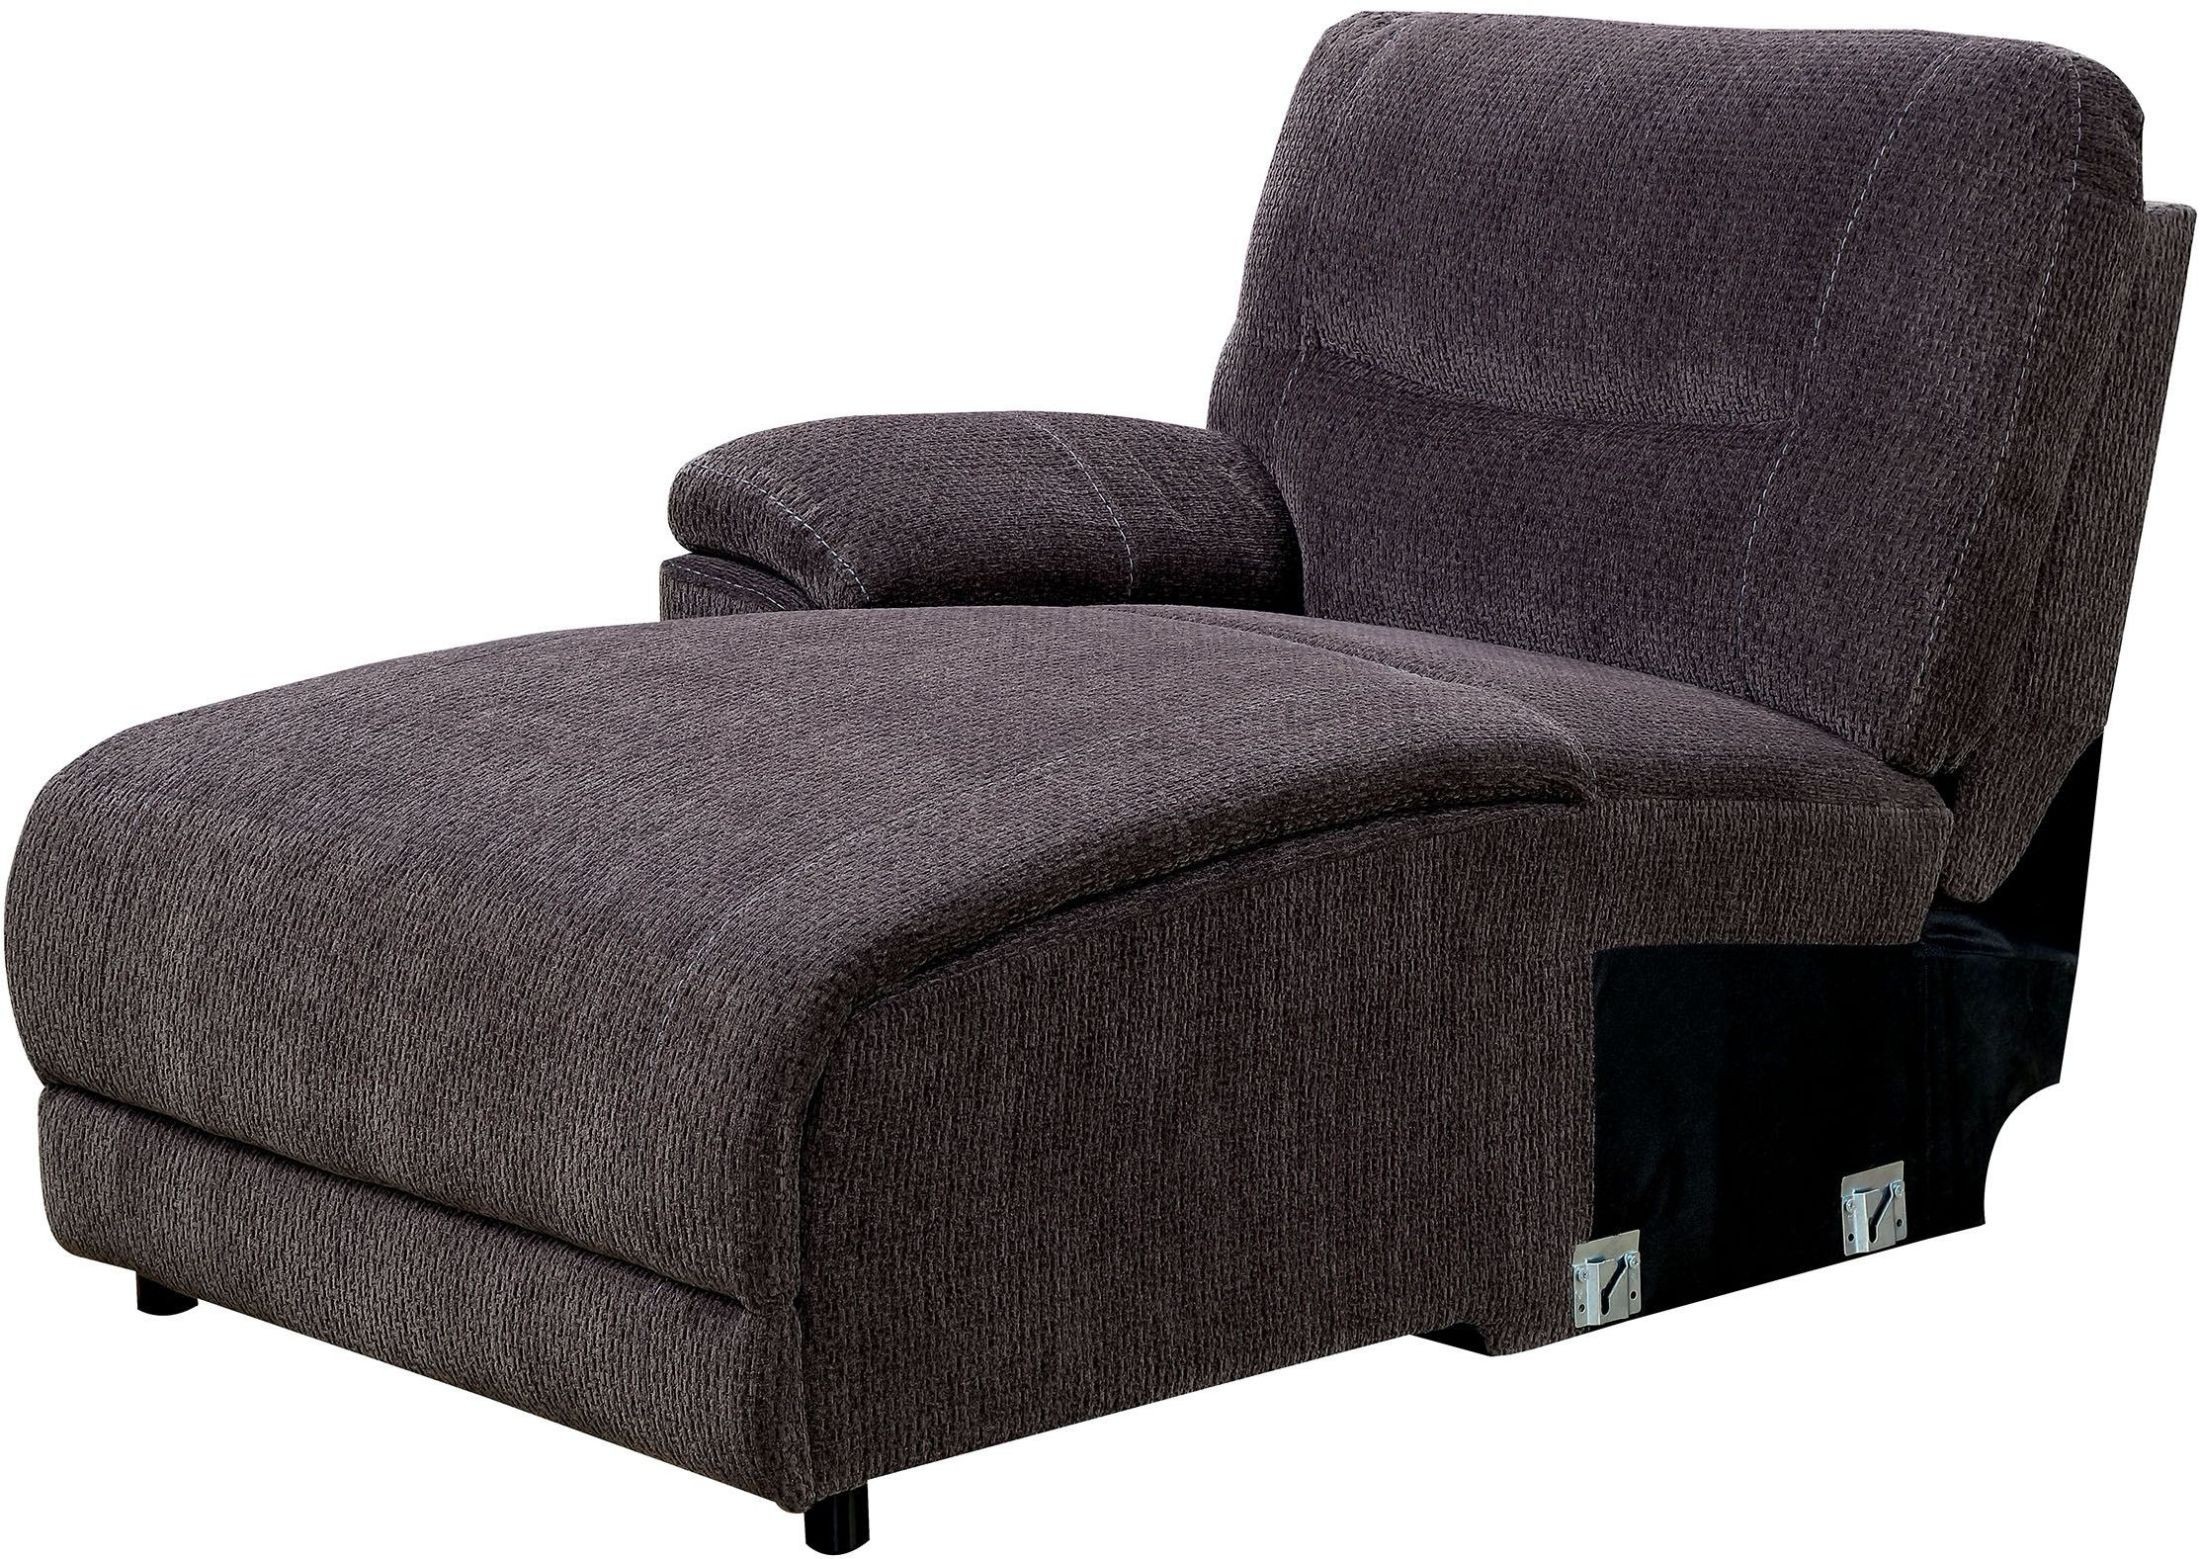 Karlee II Gray Reclining Sectional With Console from Furniture of